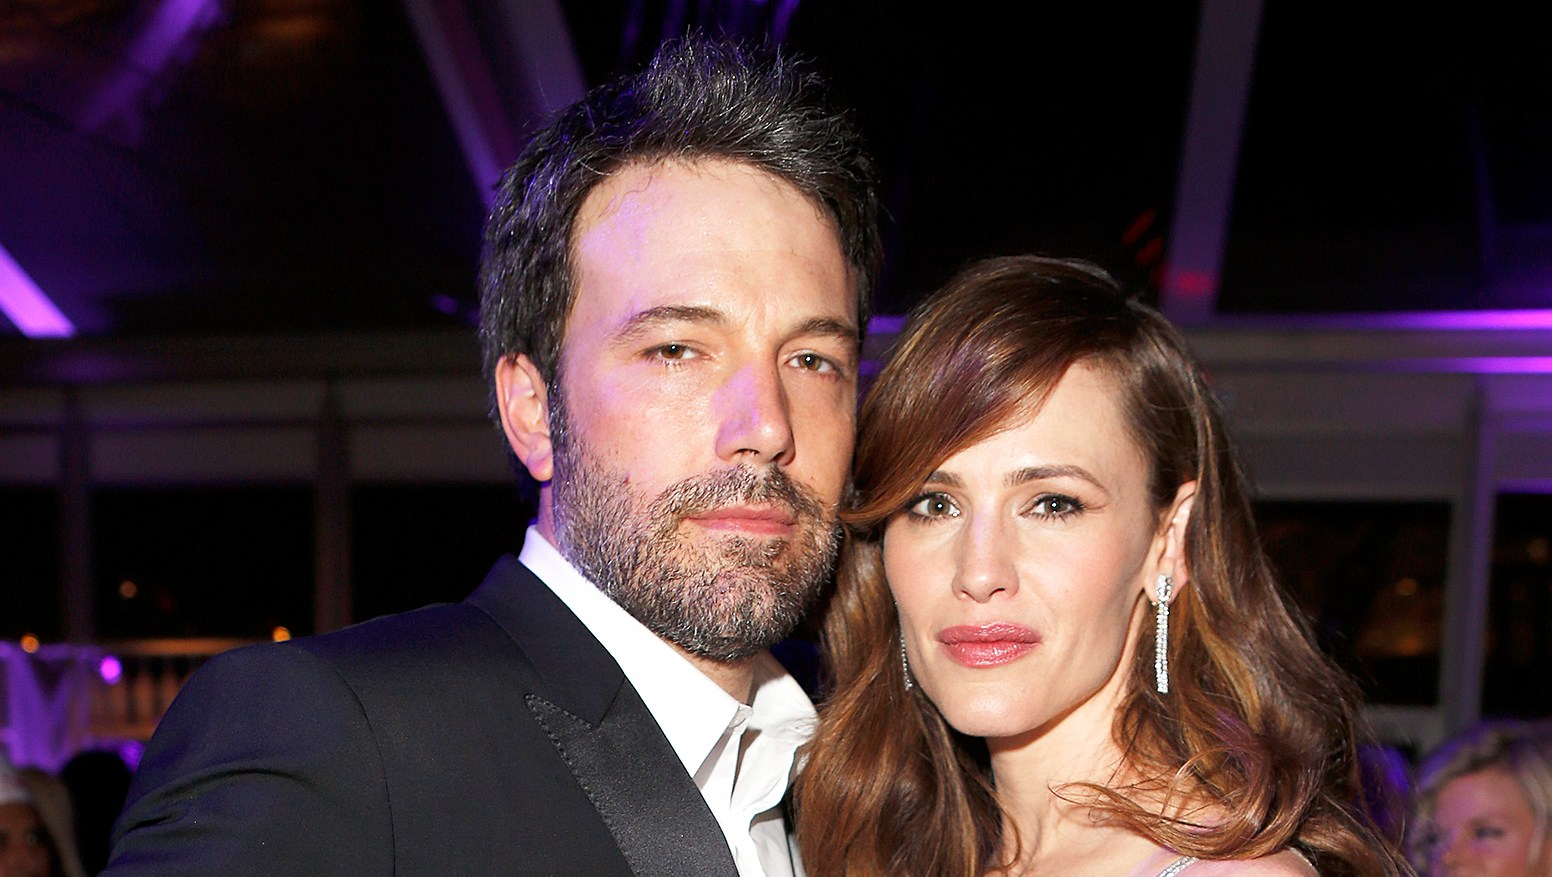 Jennifer Garner and Ben Affleck's Divorce Everything We Know So Far